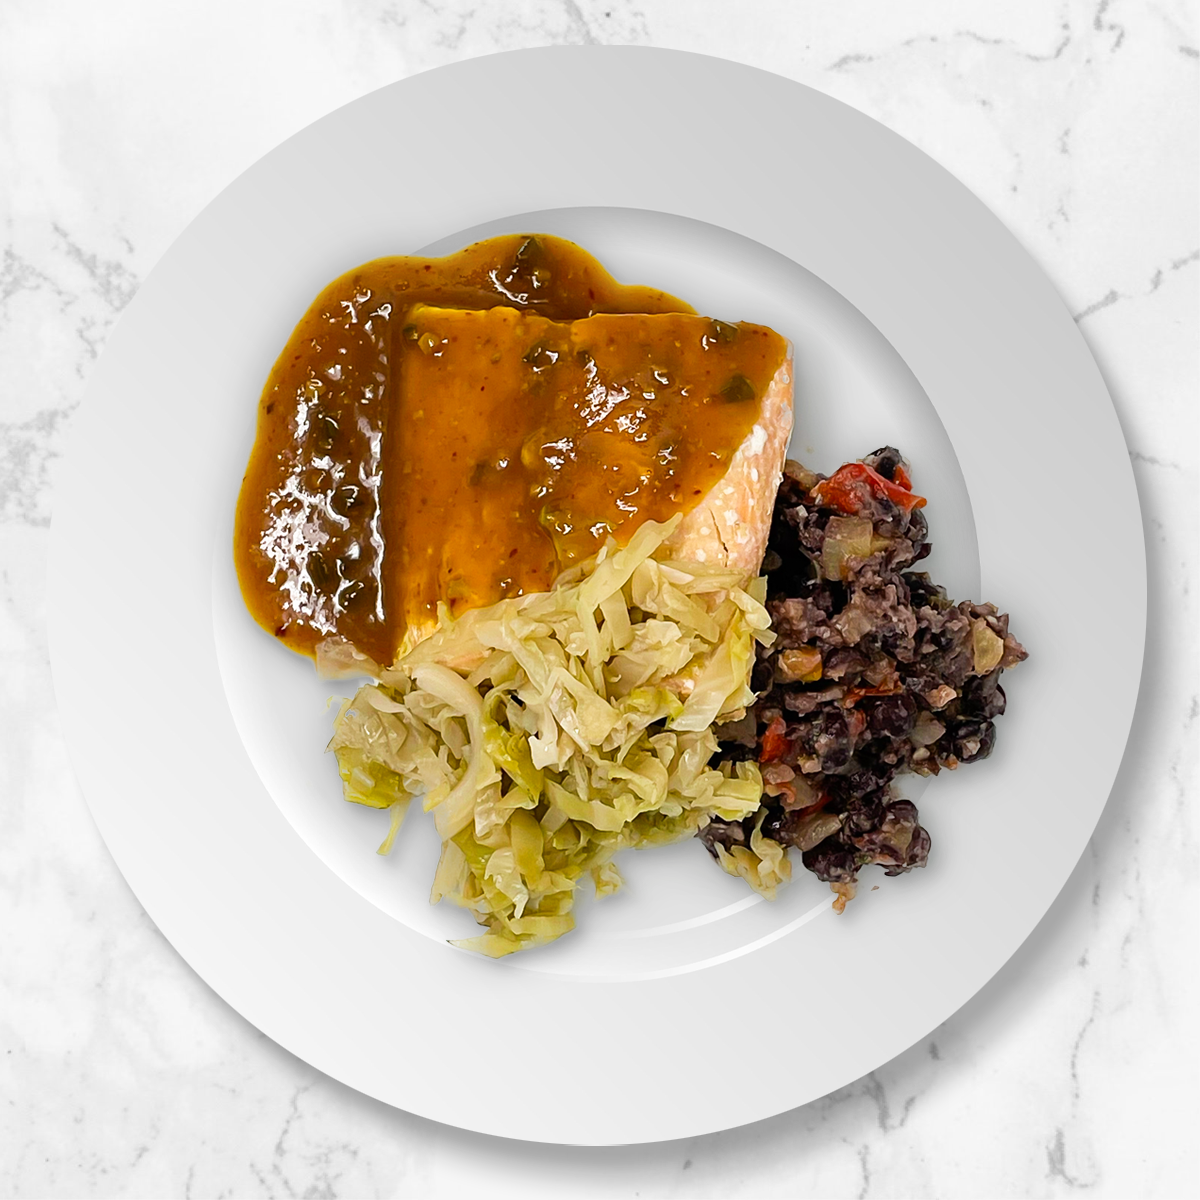 Caribbean Salmon With Refried Black Beans and Spiced Cabbage